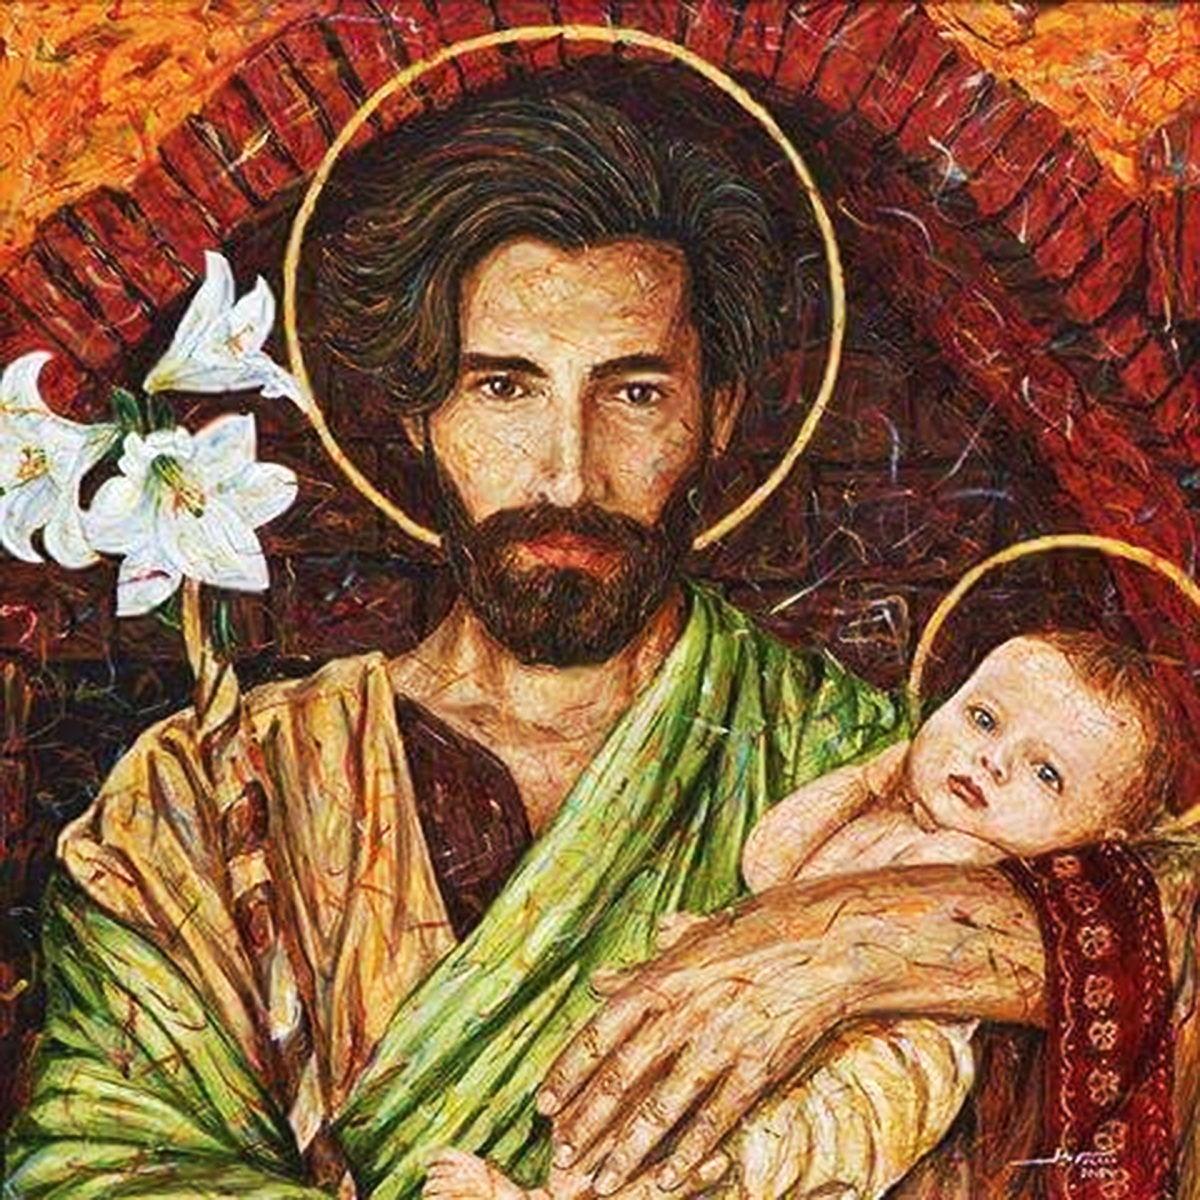 CONSECRATION TO ST. JOSEPH VI: ST. JOSEPH MOST FAITHFUL, PRAY FOR US!